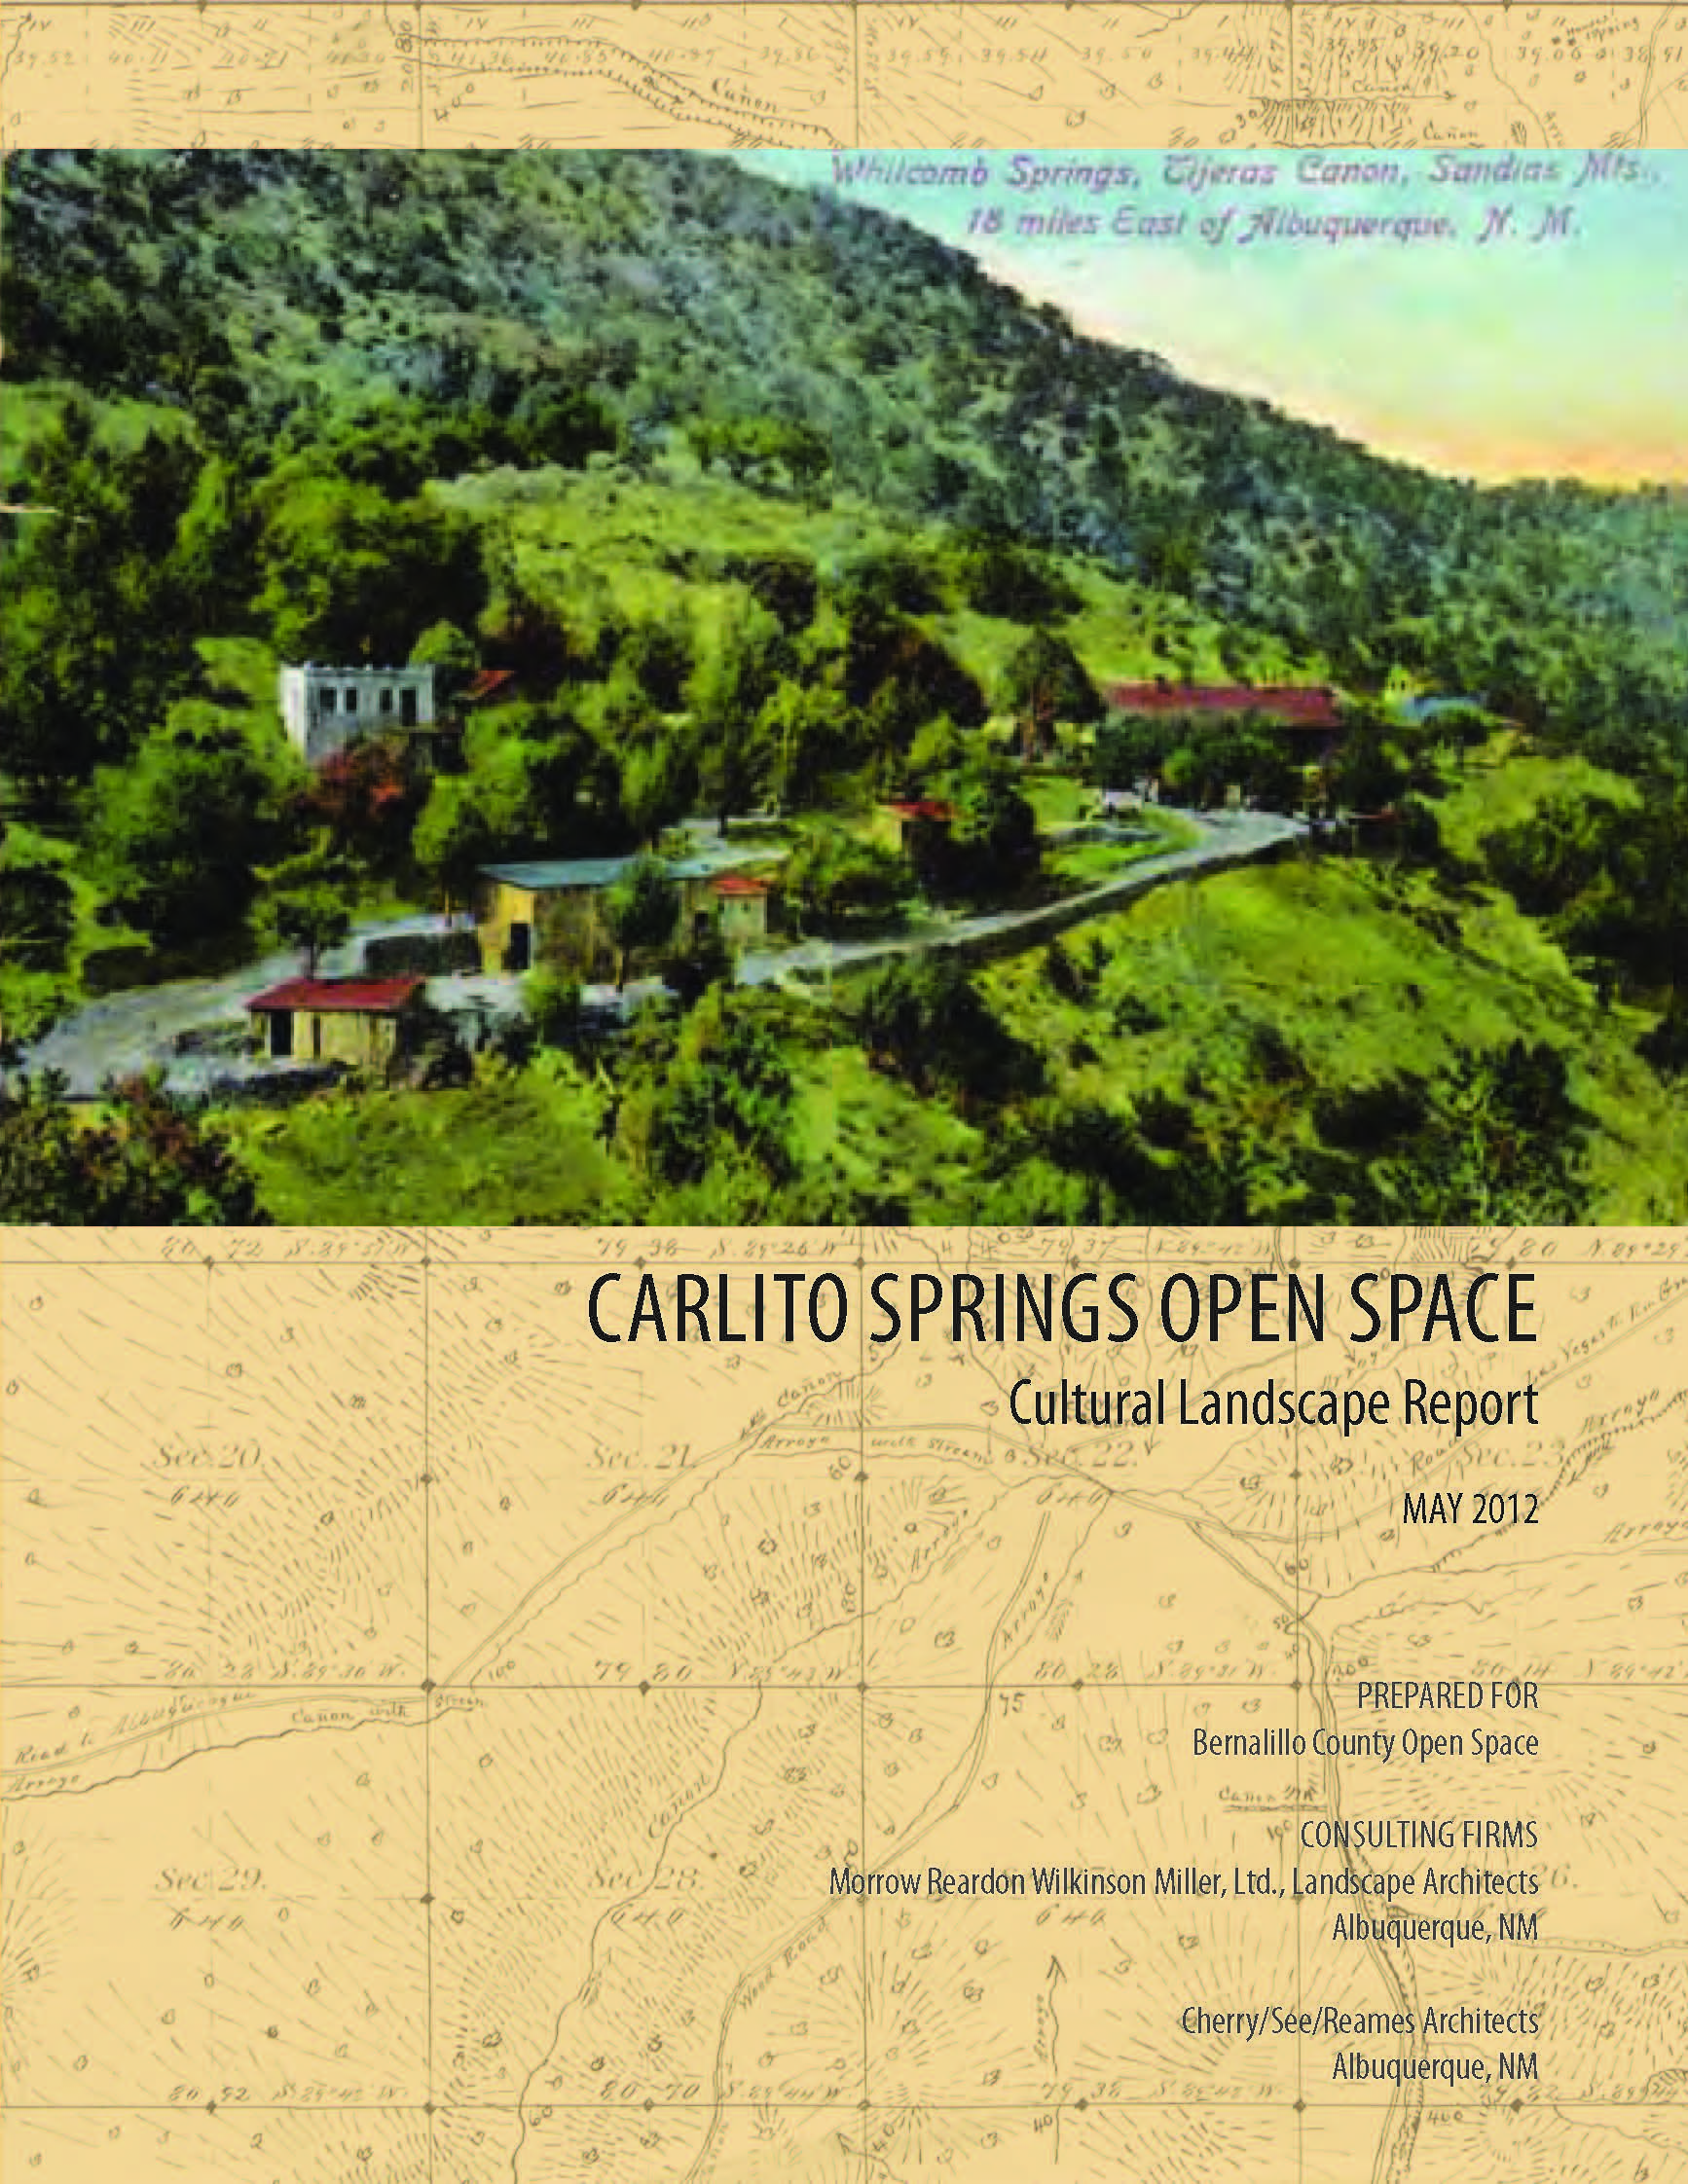 Carlito Springs Open Space - Cultural Landscape Report